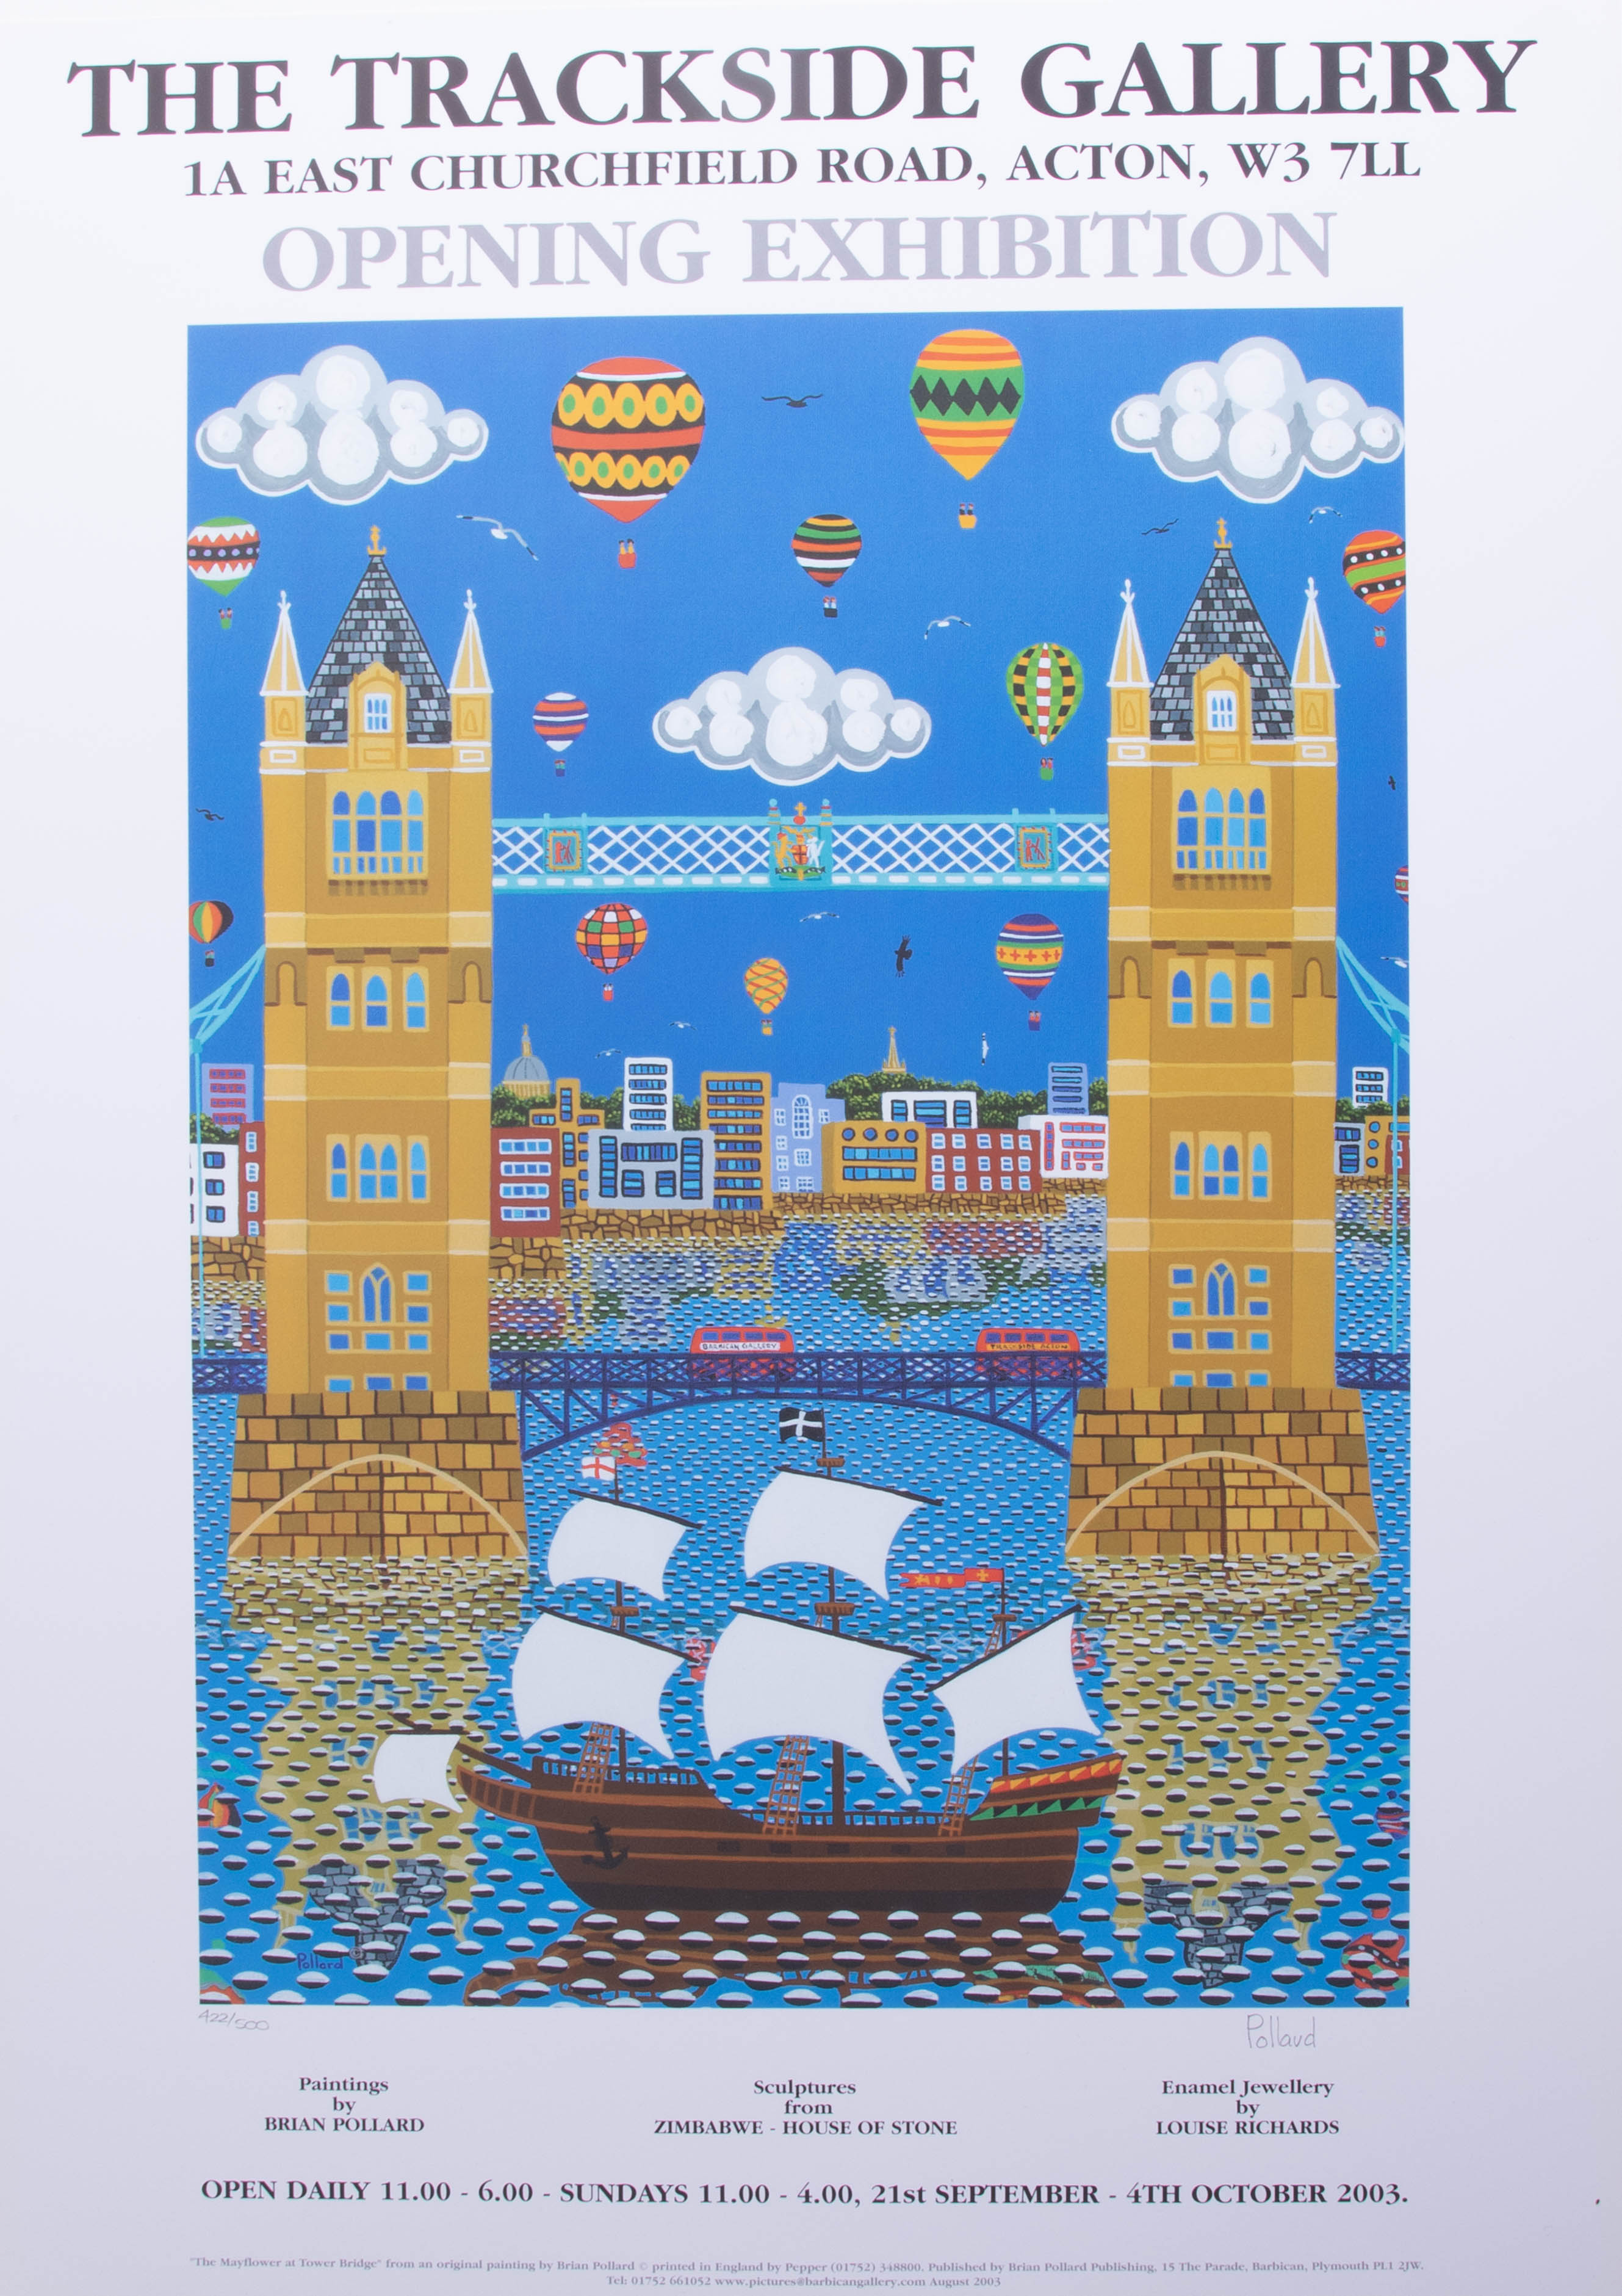 Lot 017 - Brian Pollard, signed limited edition poster No 422/500, London Bridge, not framed, 59cm x 43cm.